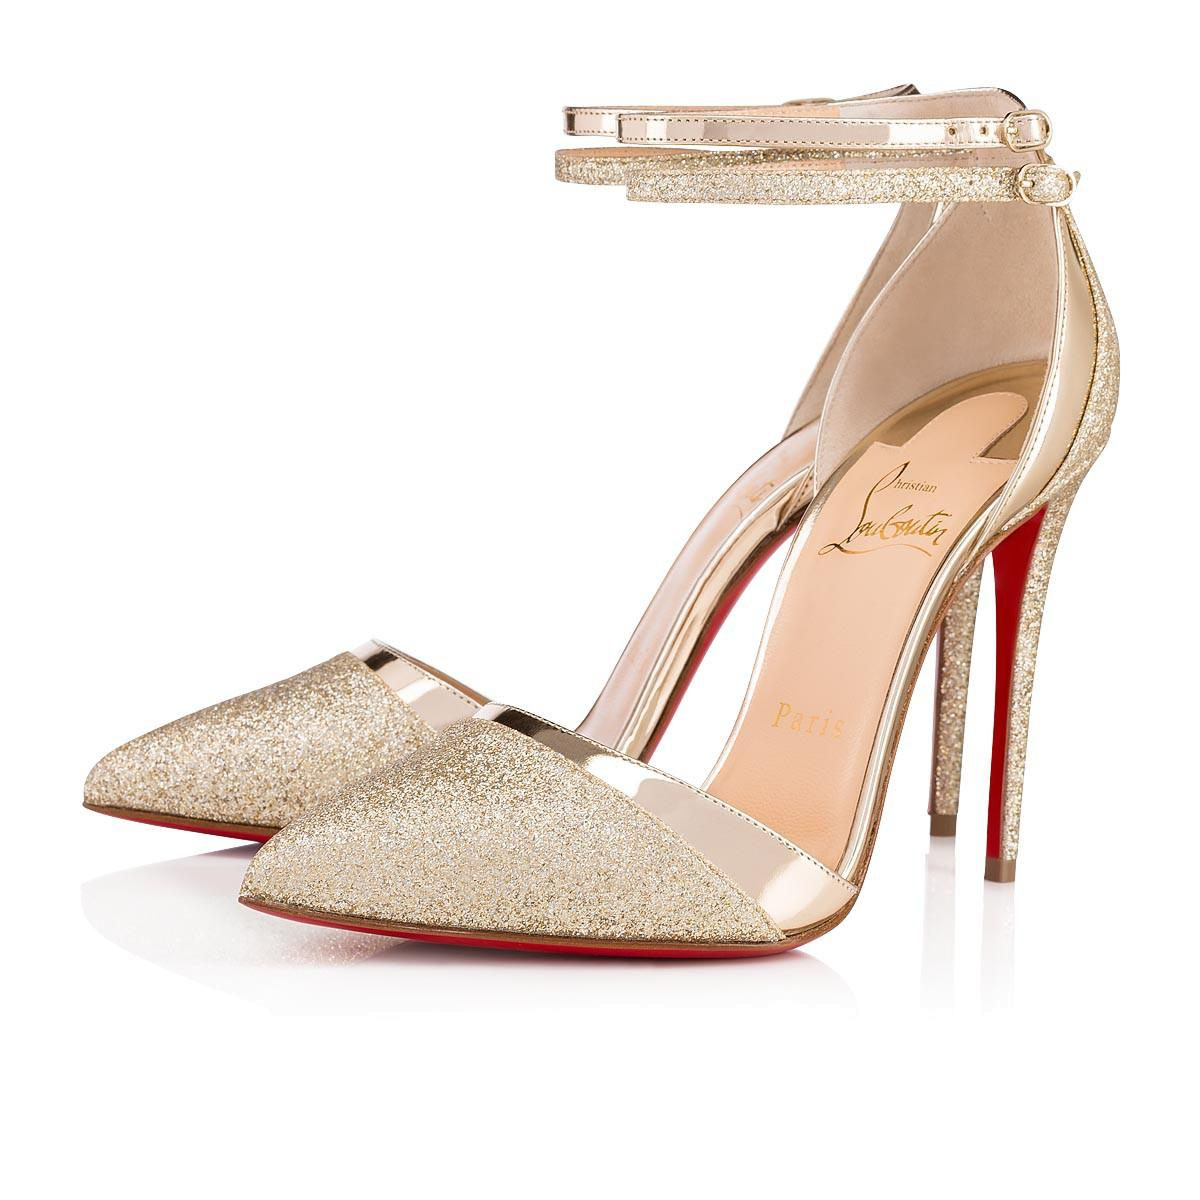 2996cd805b7 Christian Louboutin Uptown Double Glitter Tonic/Specchio In Platine ...